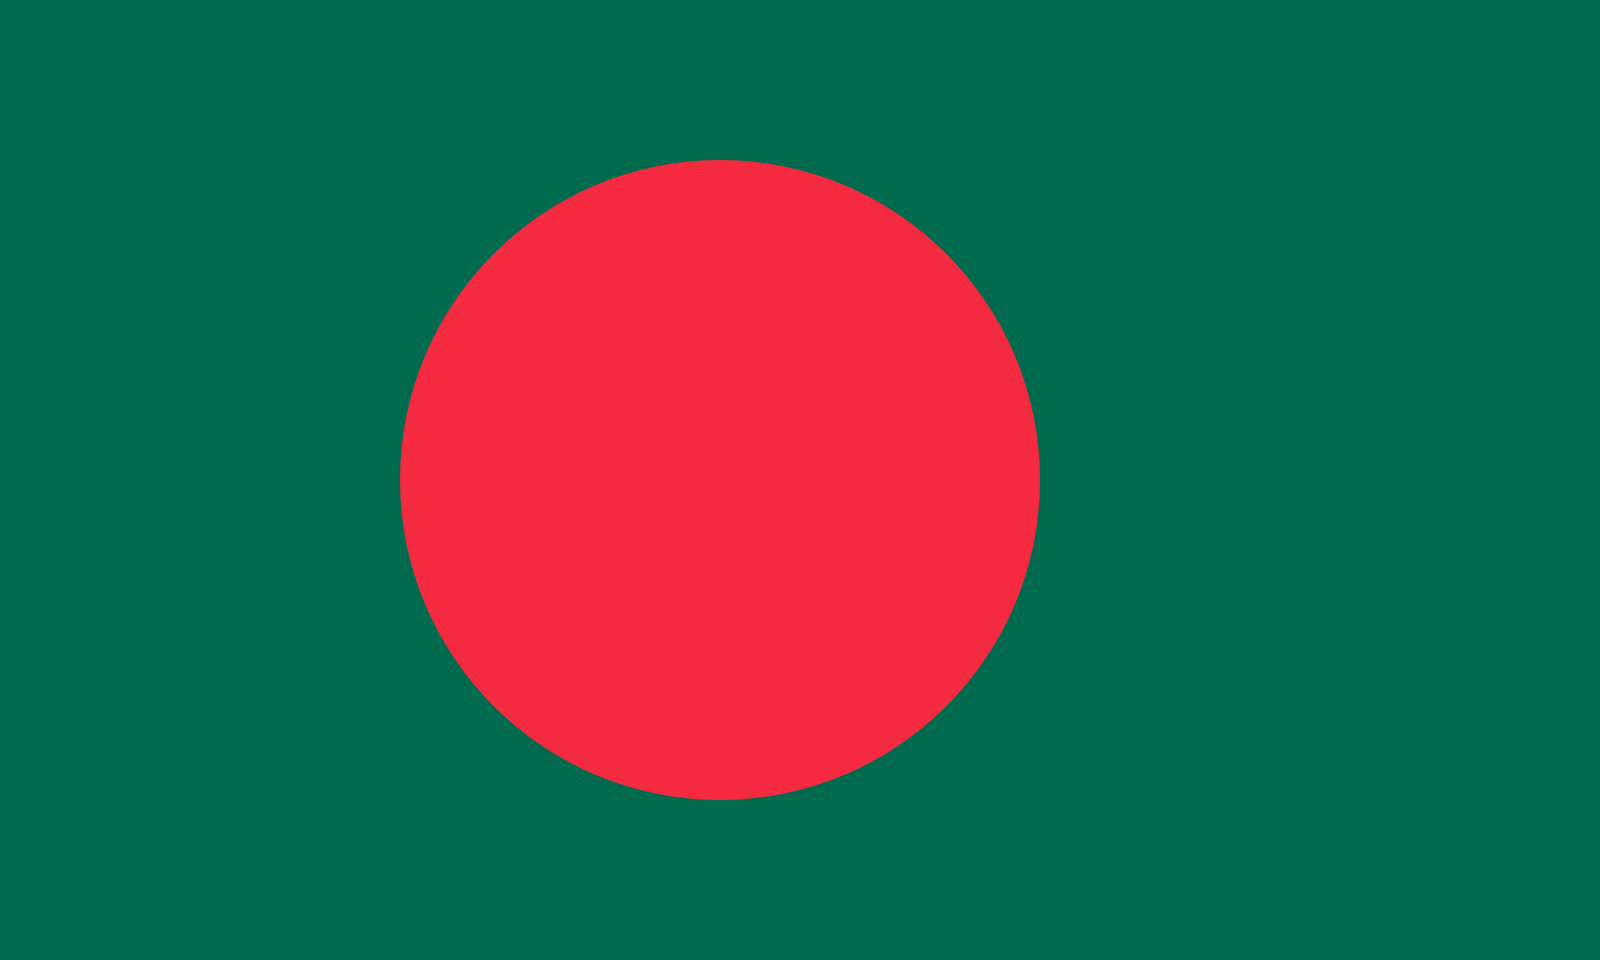 Bangladesh Pictures Of Flag